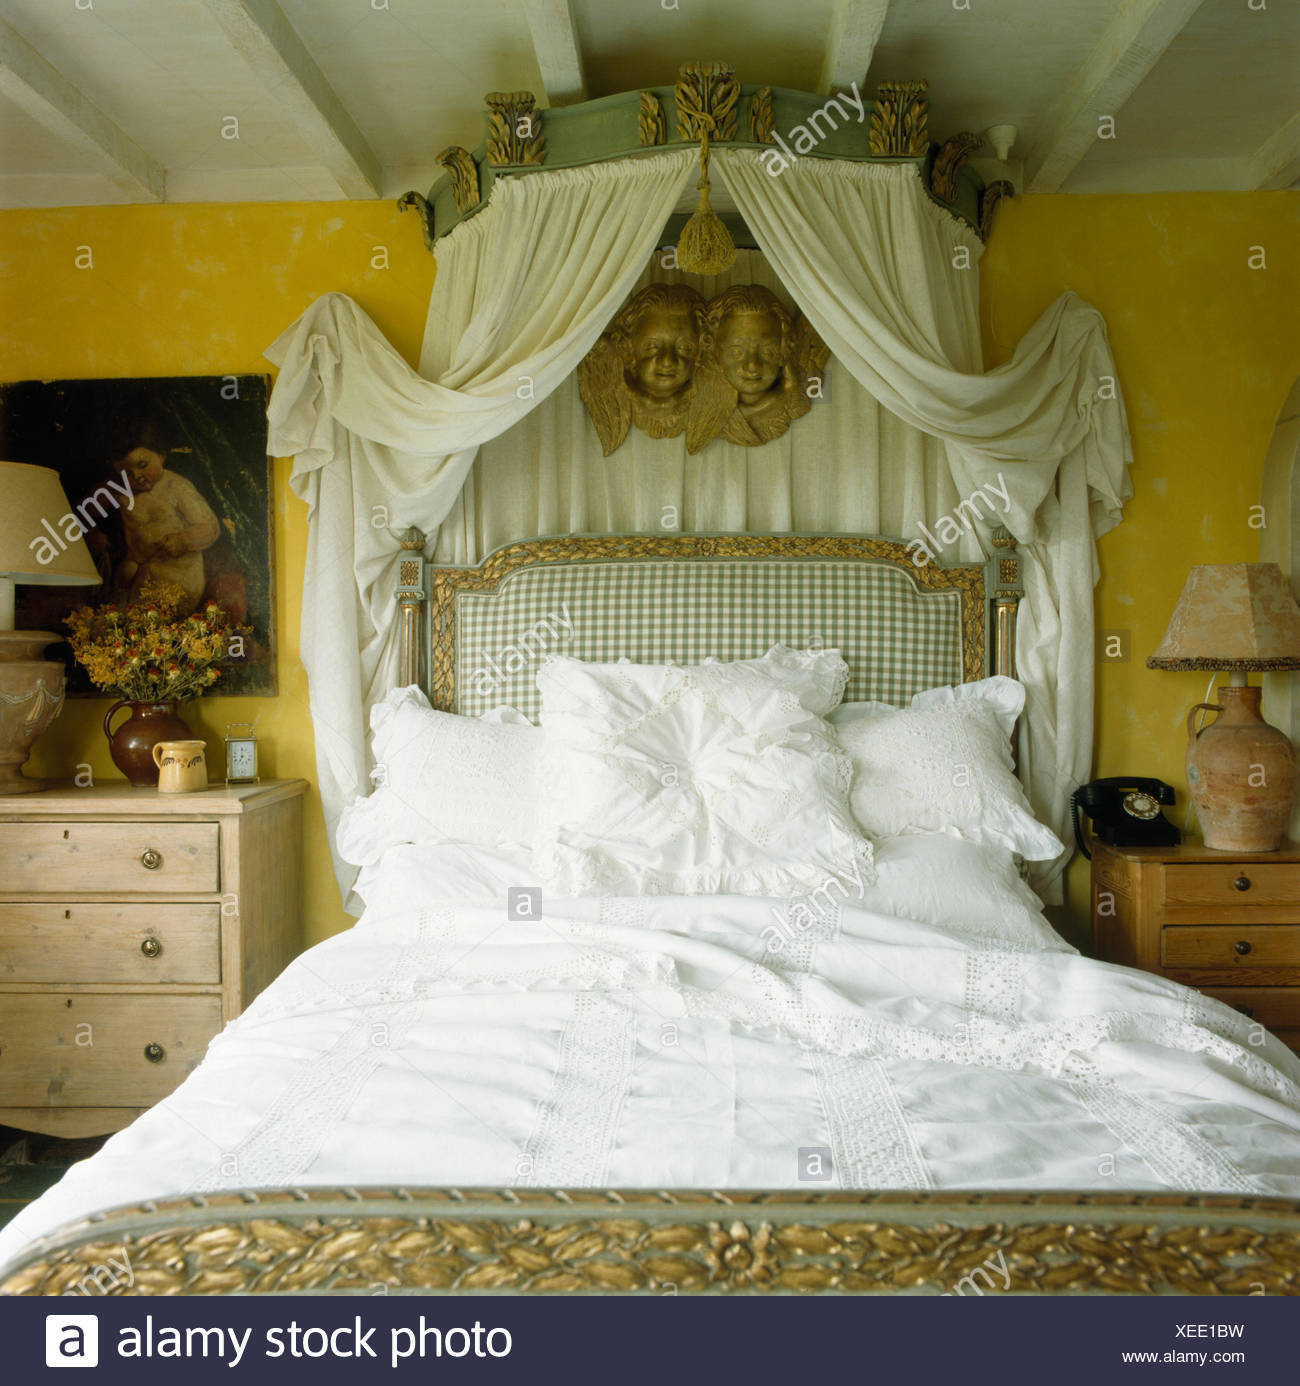 Ornate Canopy With White Drapes Above French Bed With White Bedlinen In  Eighties Bedroom   Stock